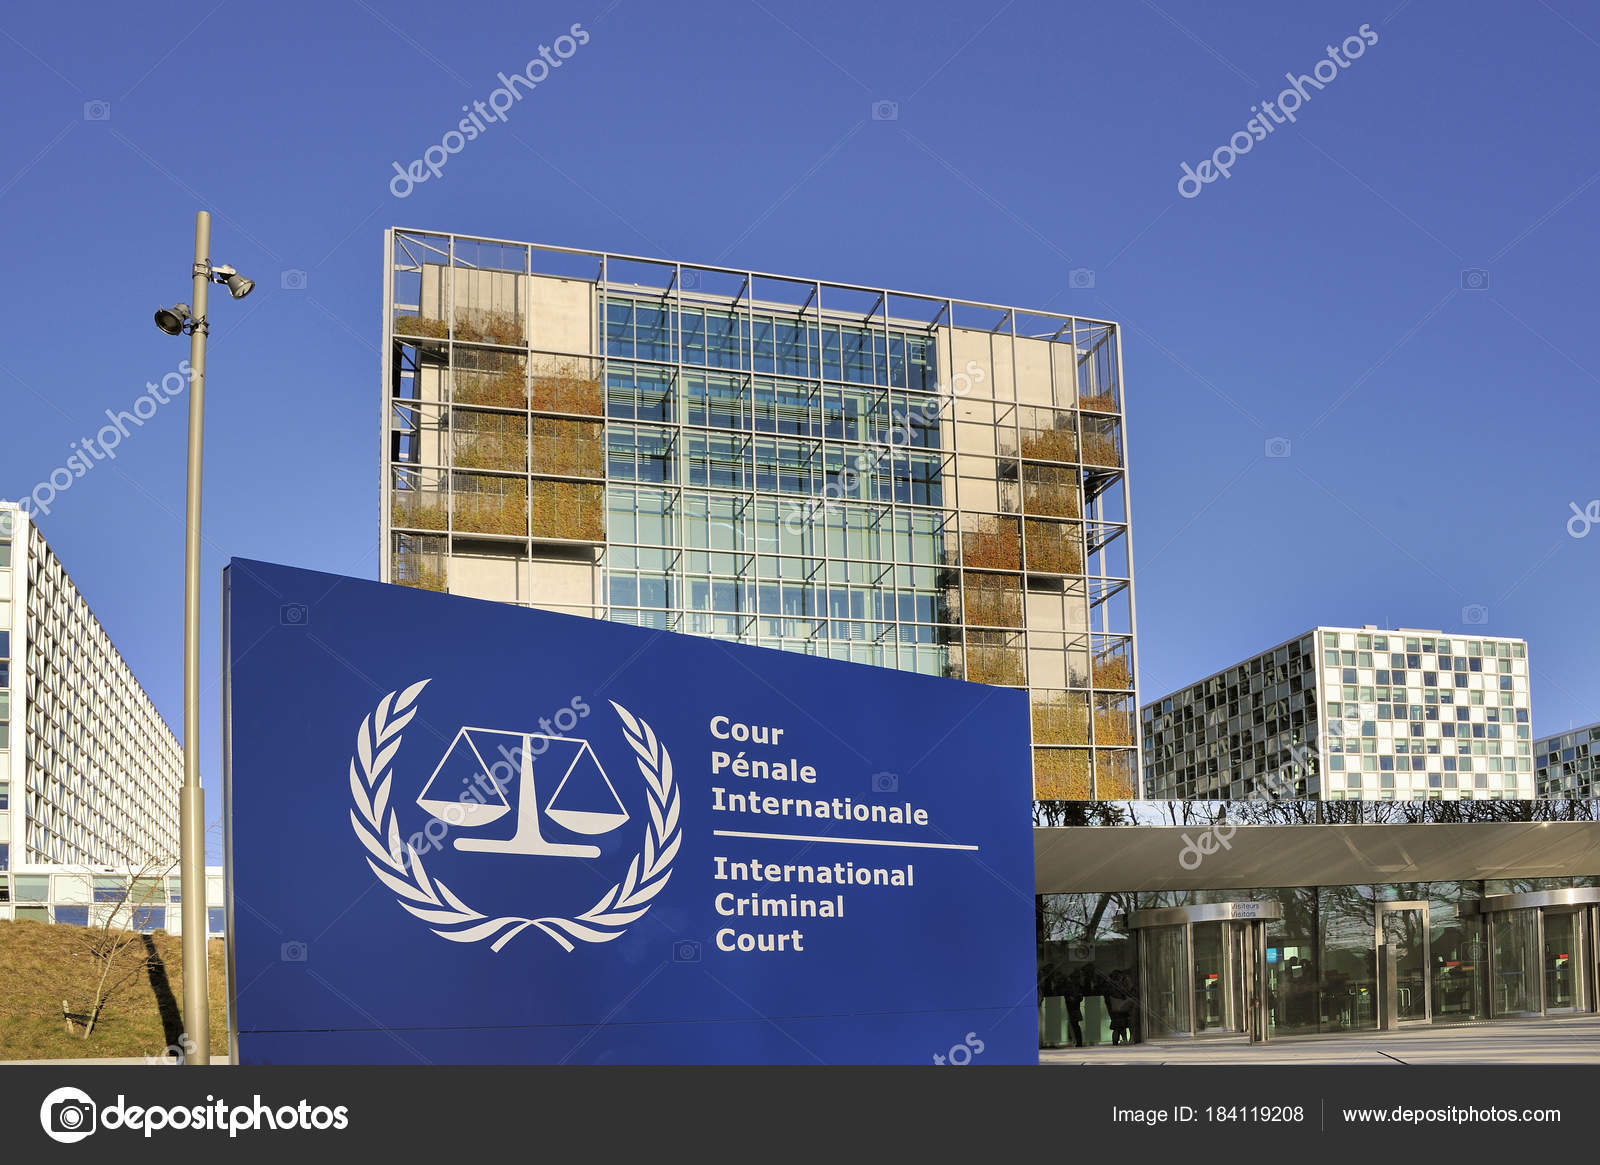 the effectiveness of the international criminal court The rome statute of the international criminal court — currently signed by 139 states — is the treaty that created the international criminal court (icc) in effect, it established a new system linking the national and international court systems to deal with the most egregious crimes: war crimes, crimes against humanity, and genocide.